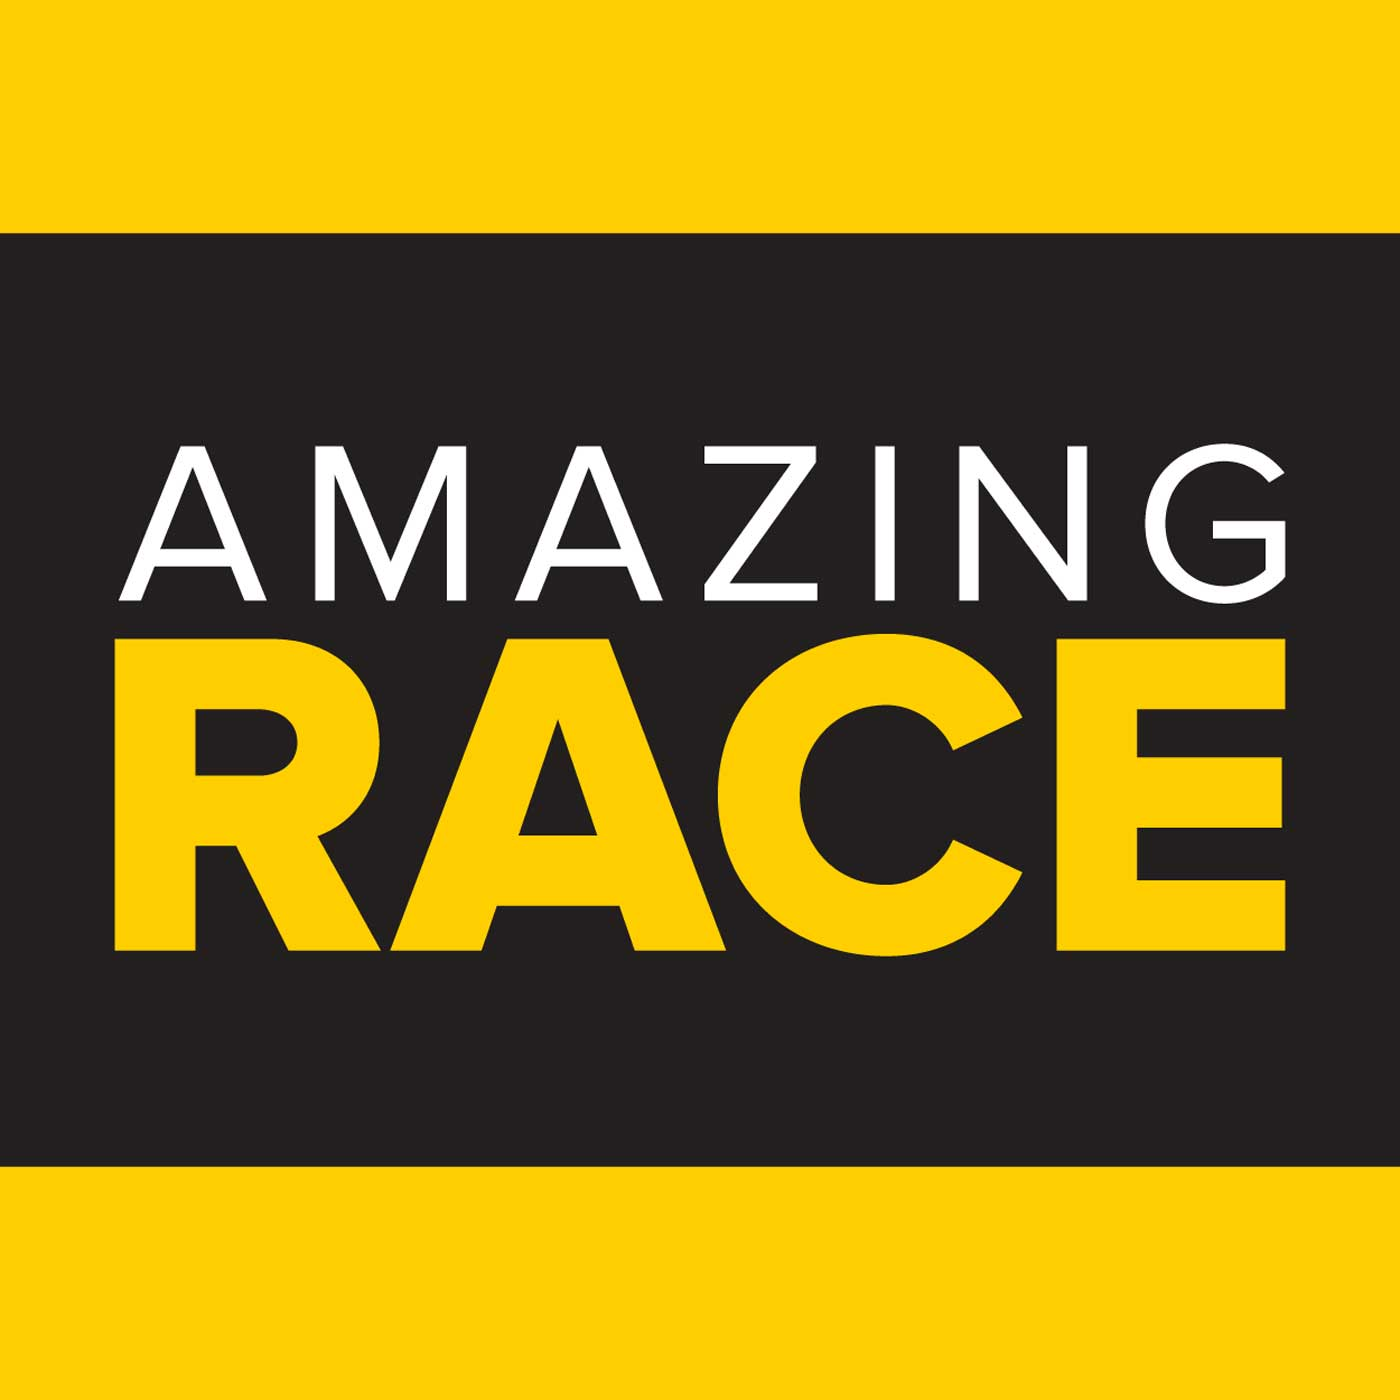 Amazing Race: Podcast: Amazing Race Recaps On Reality TV